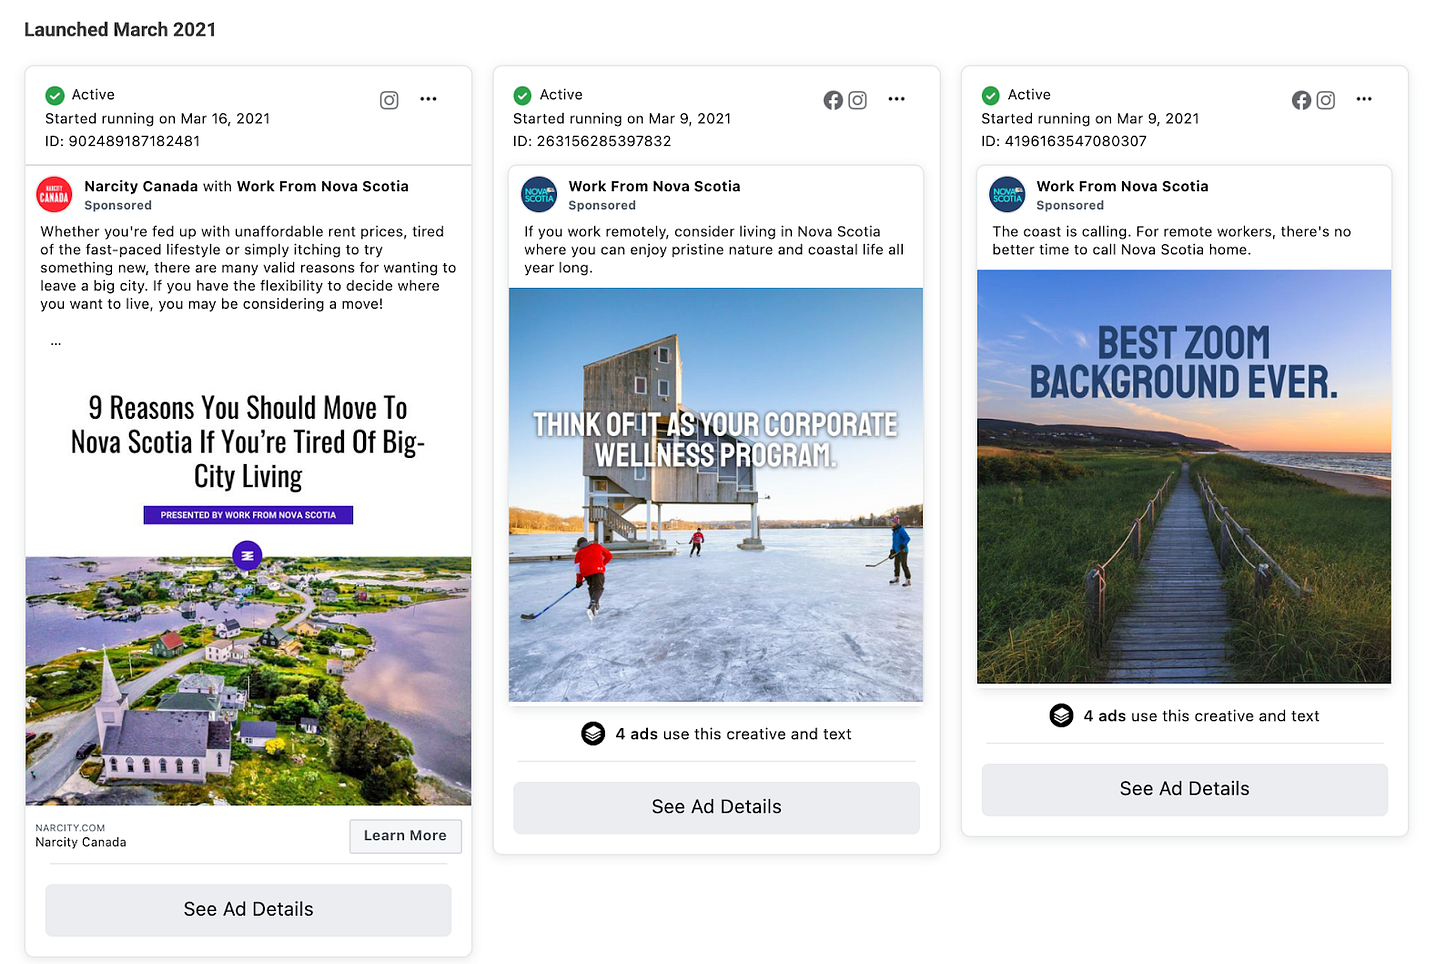 Screenshot of facebook ads that work from nova scotia has put out